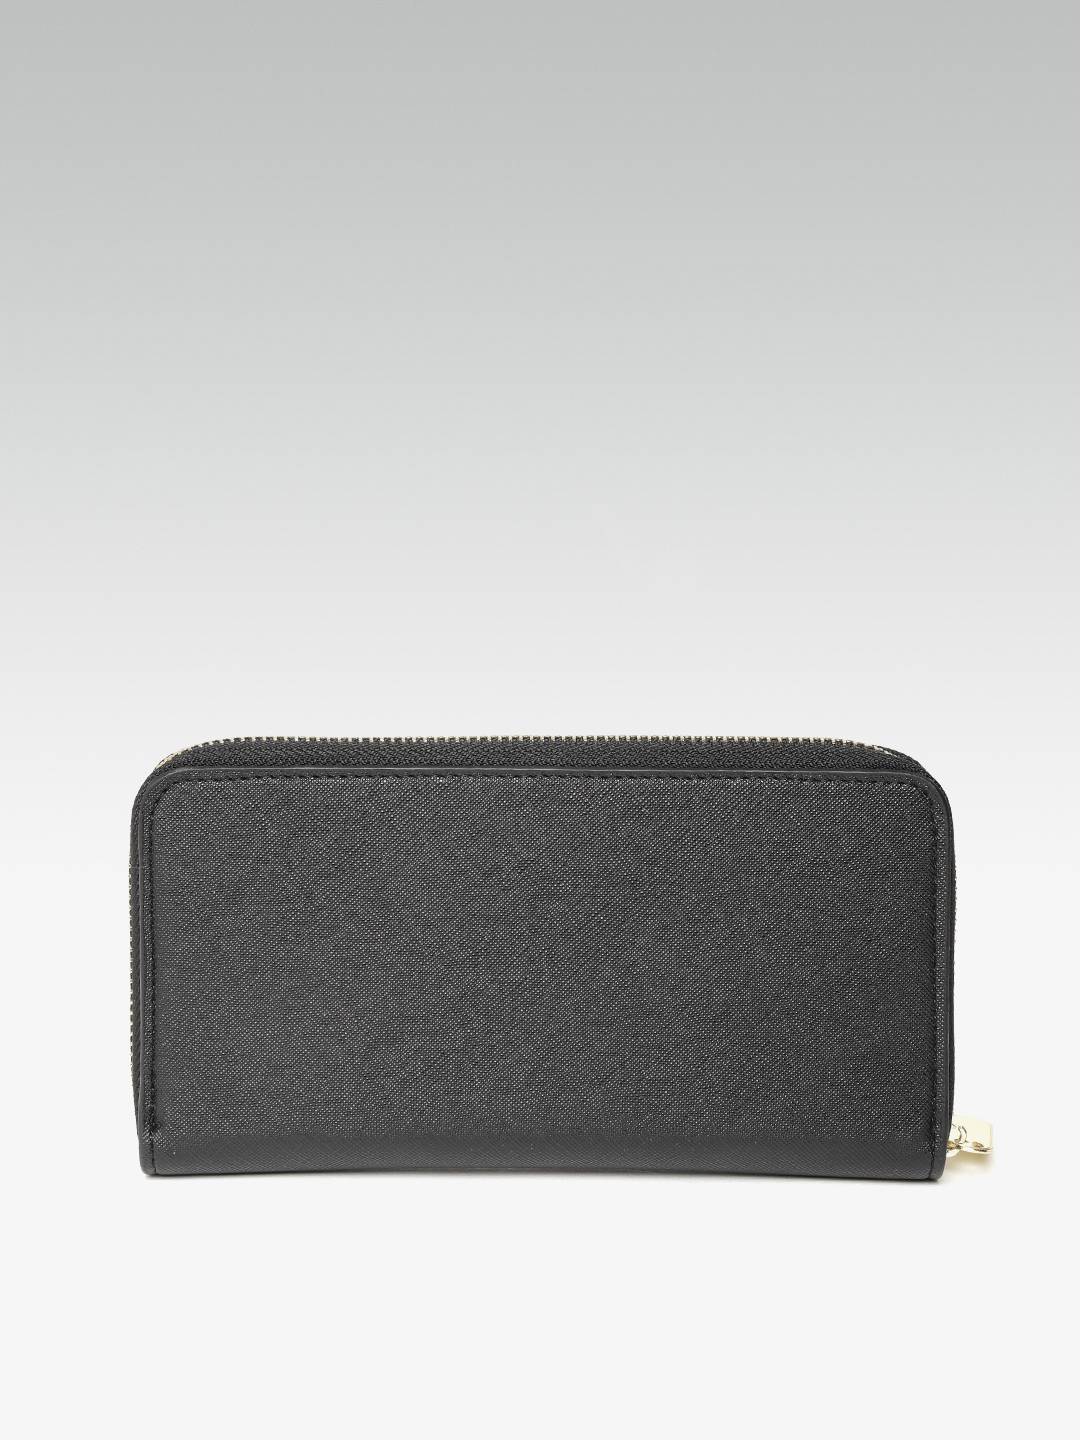 Wallets and Makeup Pouches-Sticking To the Classics Black Wallet3